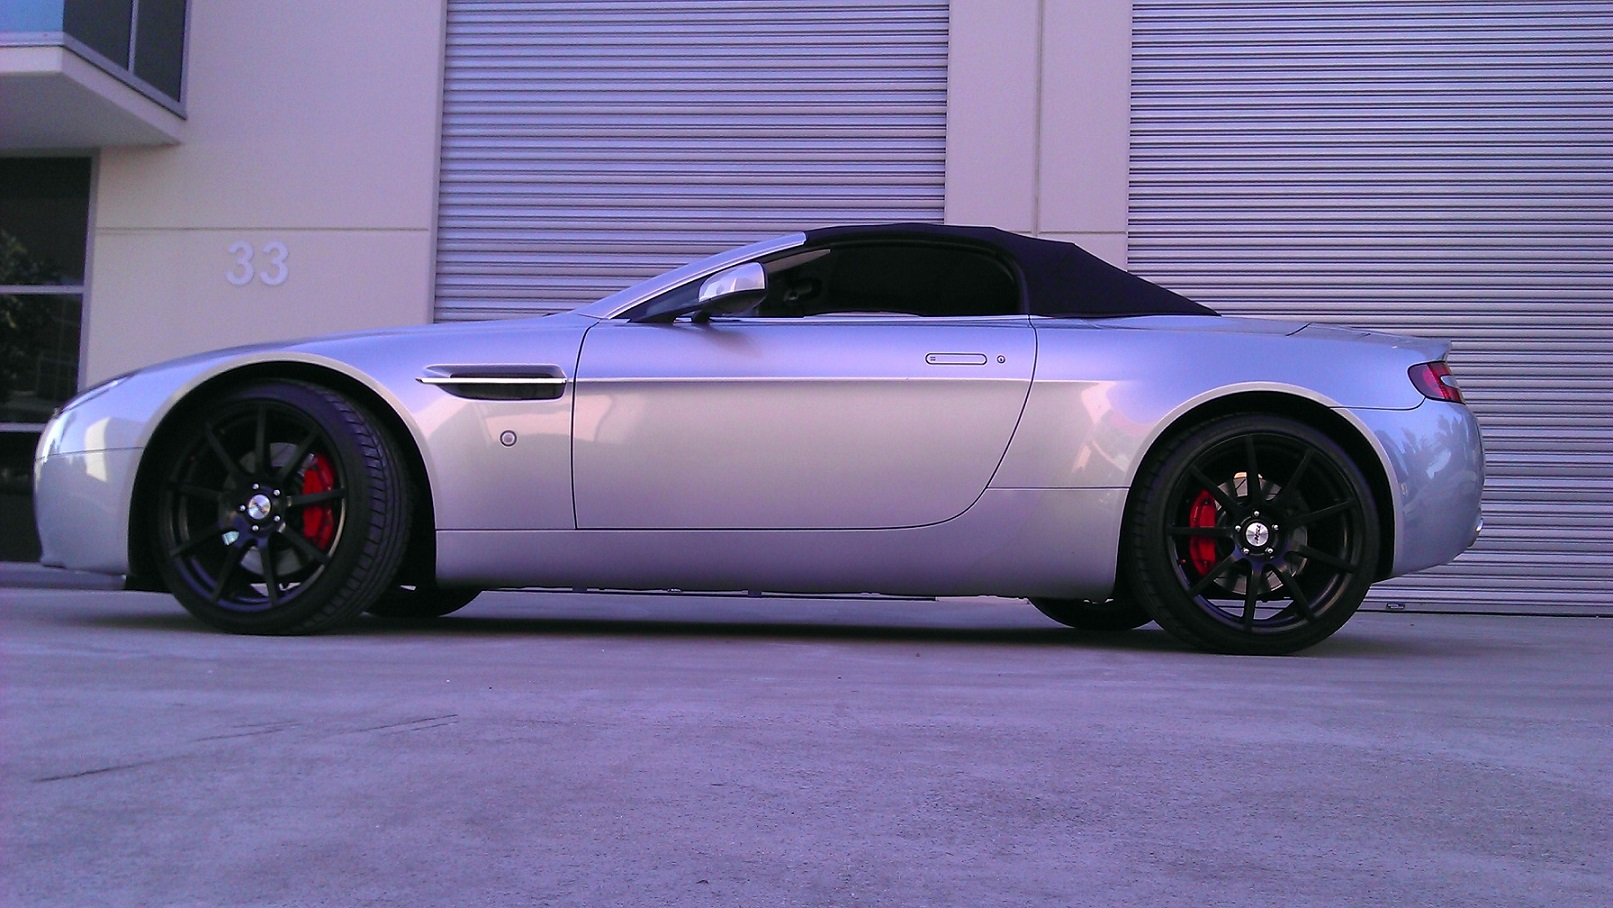 Aston Martin Vantage on TSW Interlargos